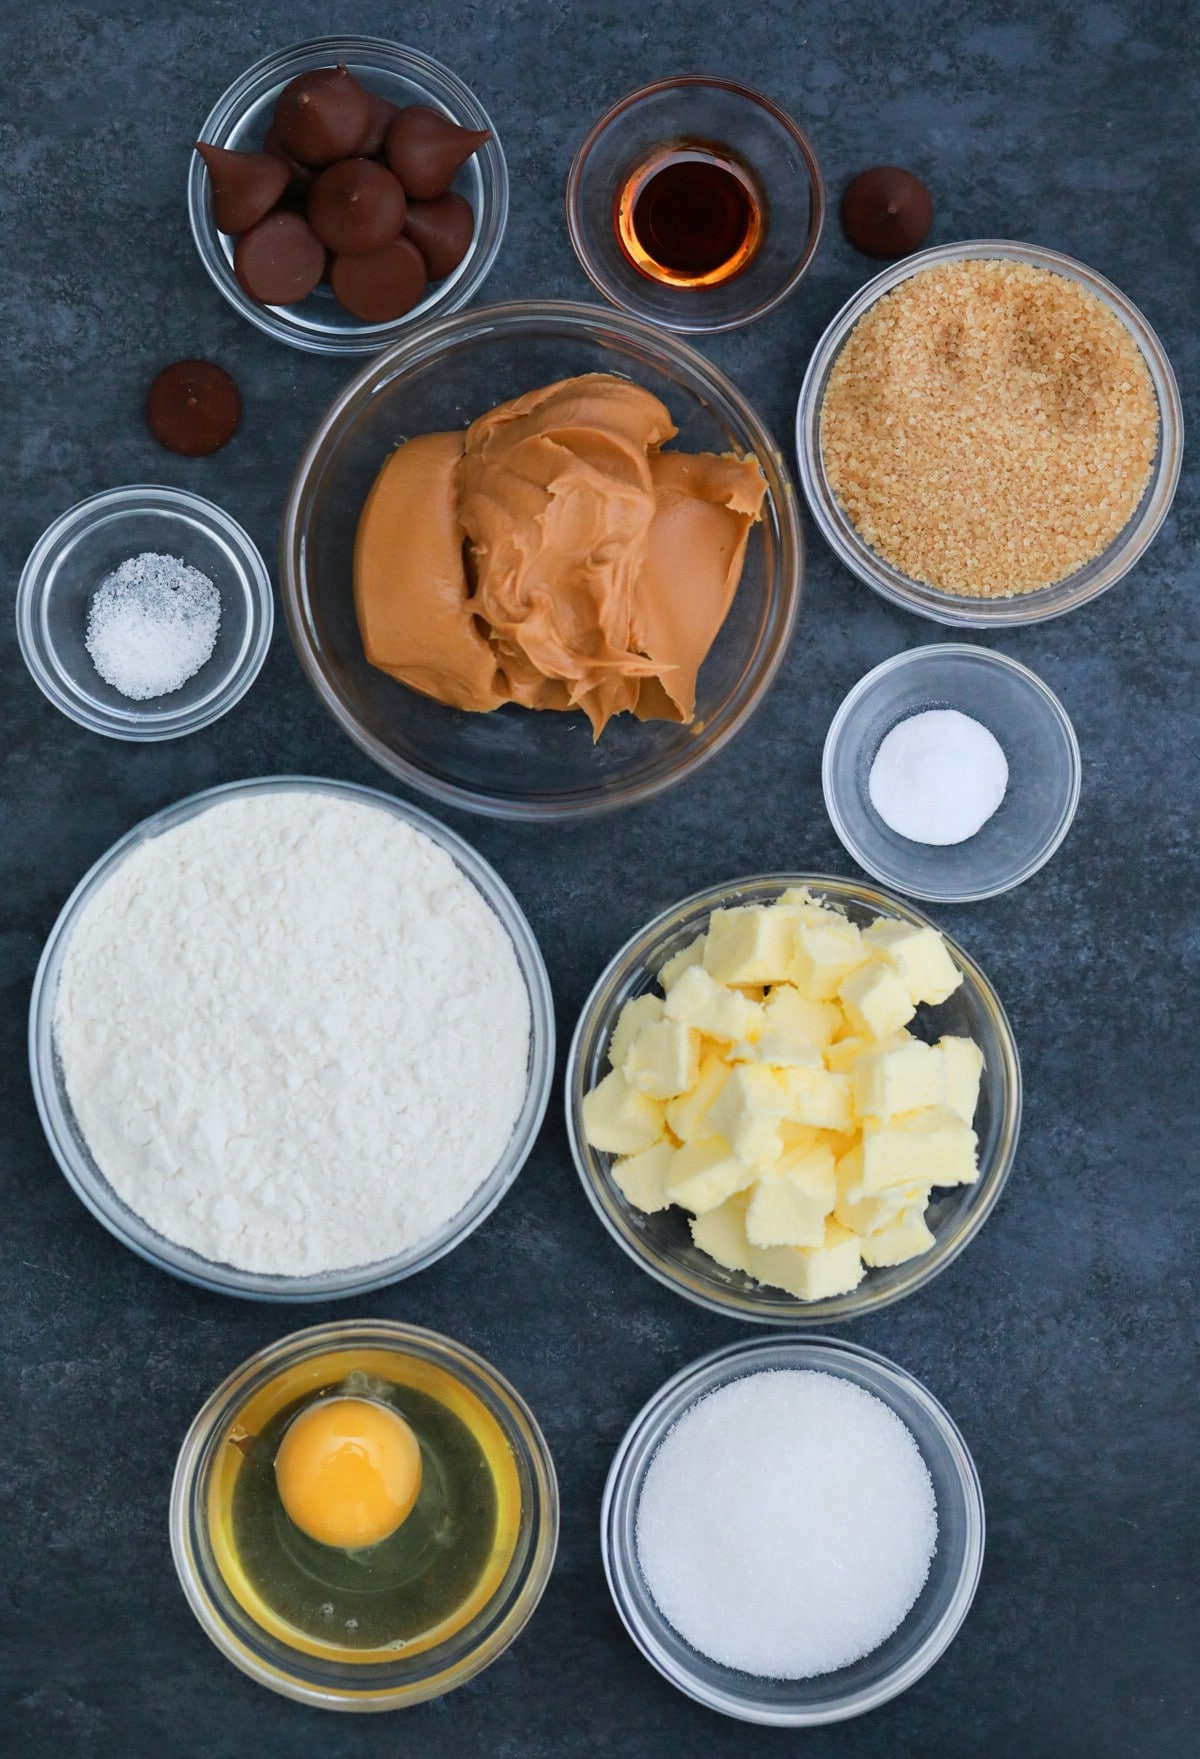 Ingredients for peanut butter blossom cookies in bowls on gray counter